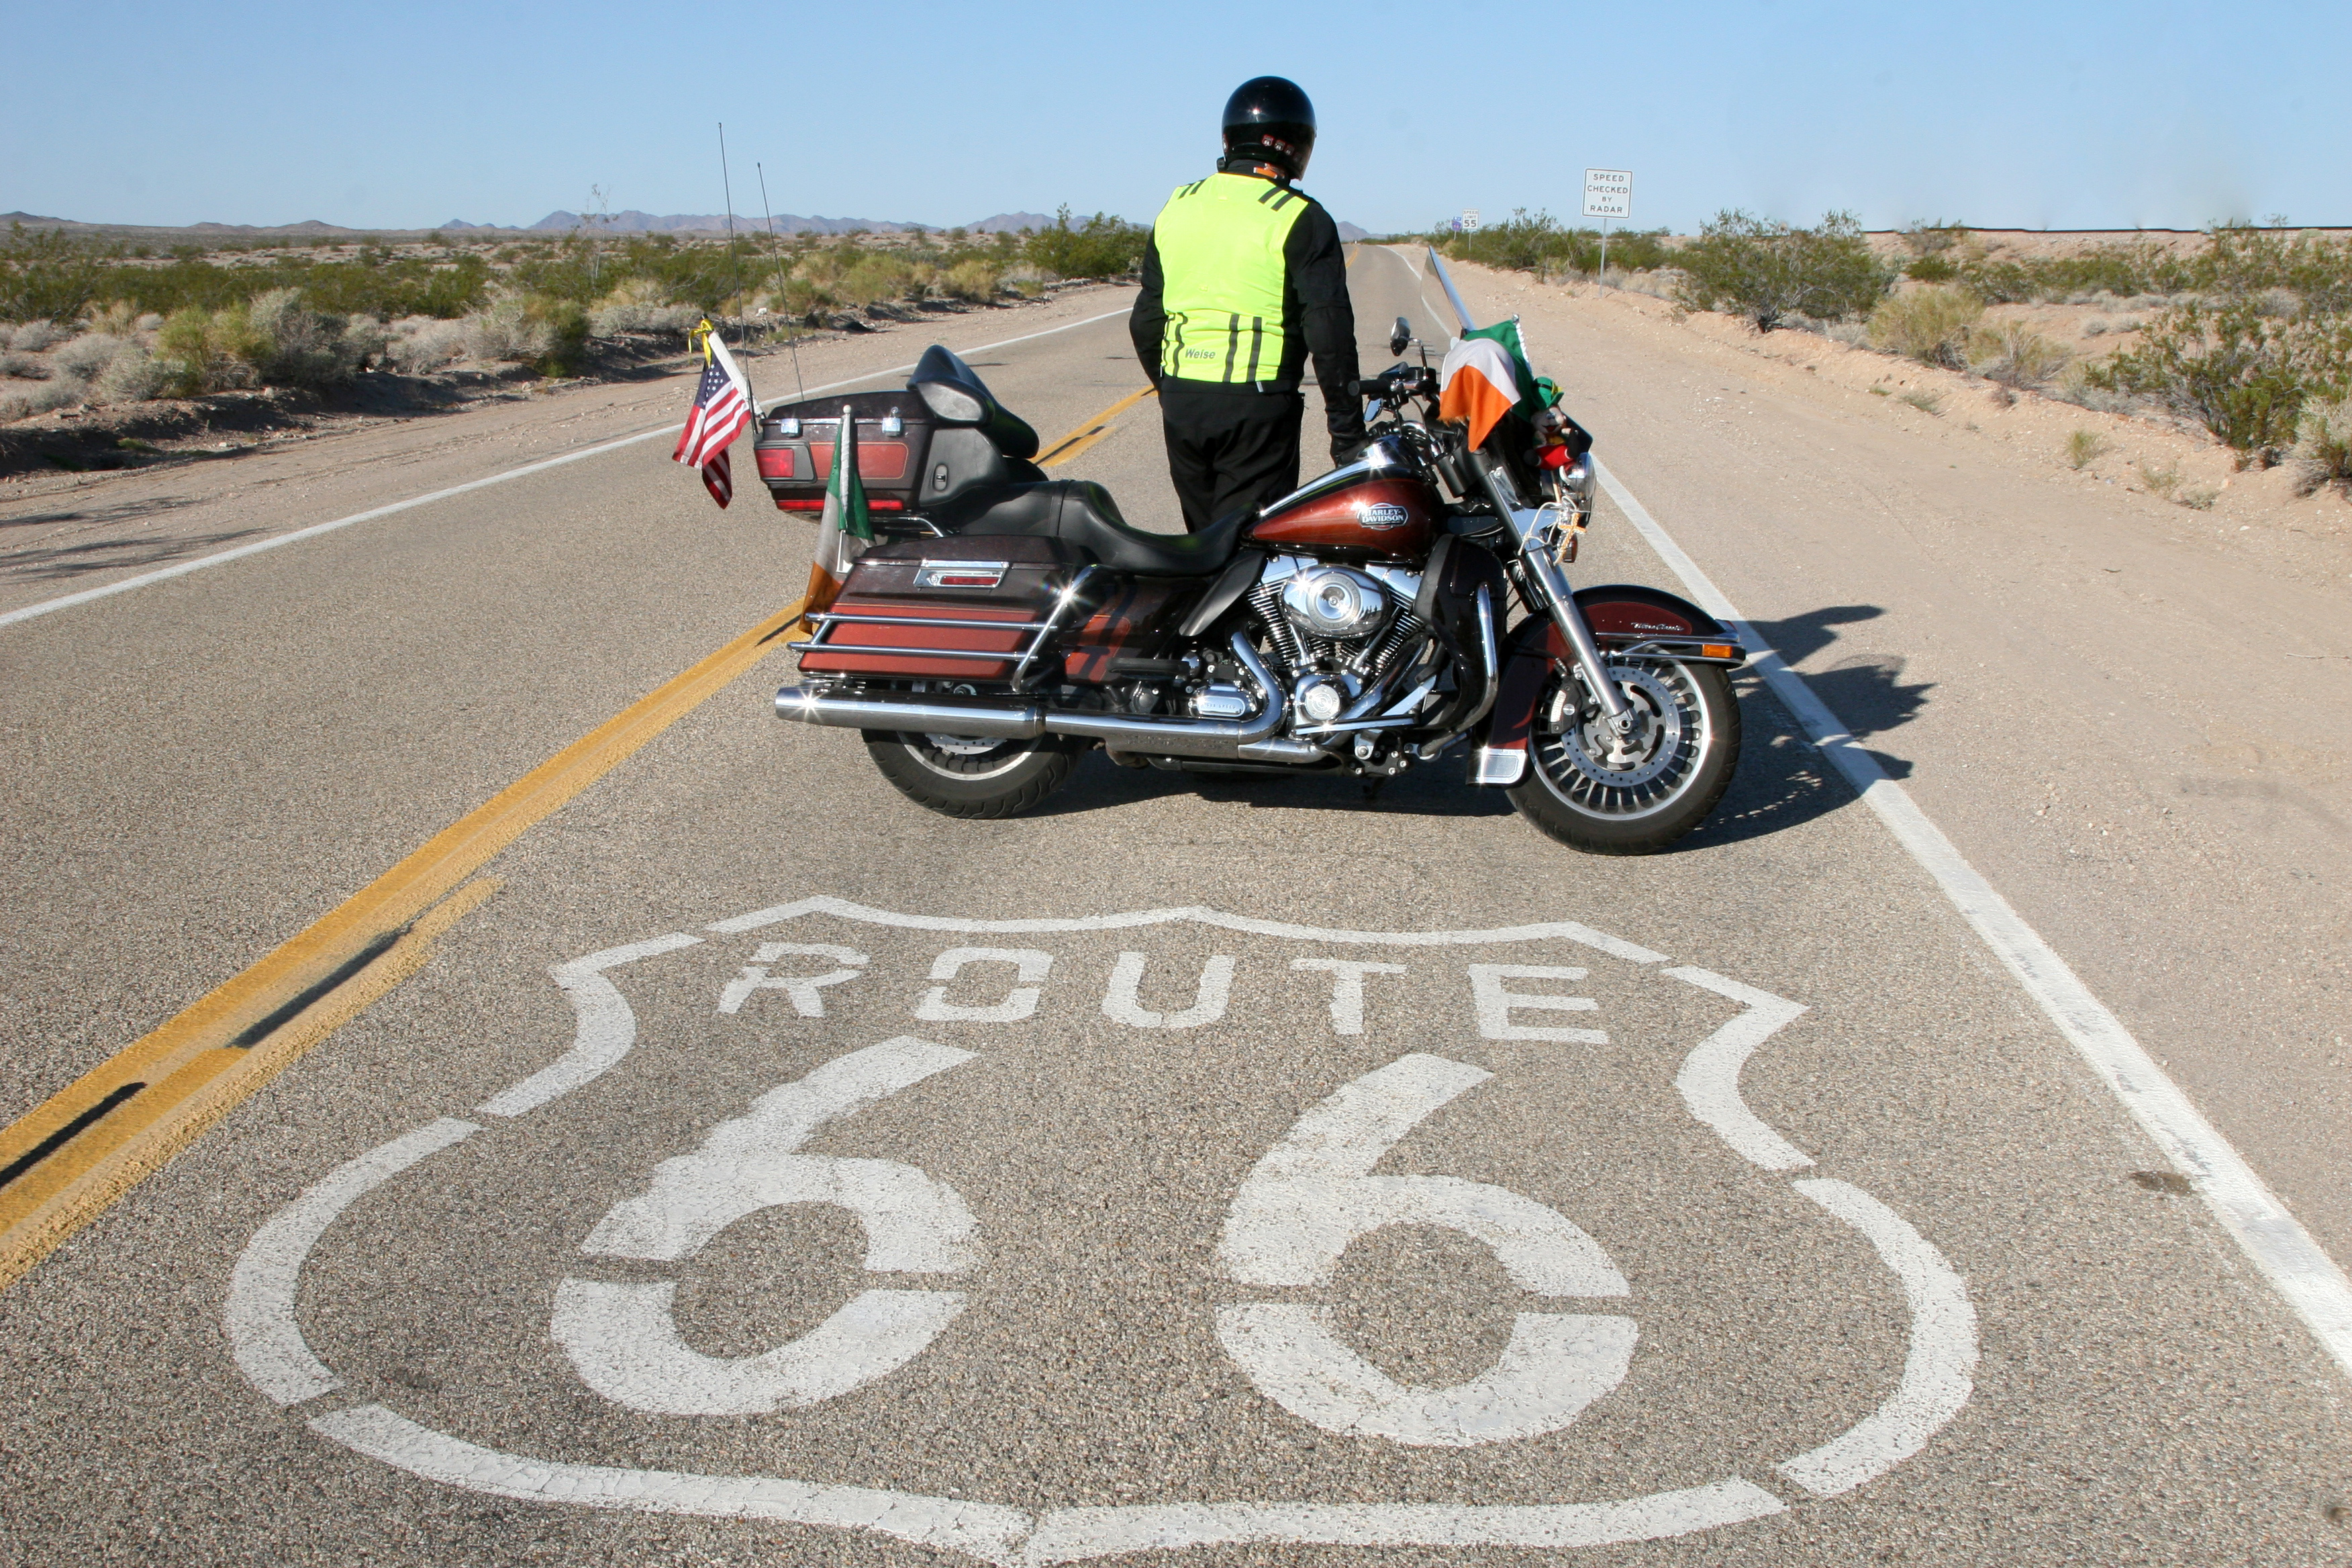 Great Road Trips Route - Road trip route 66 usa